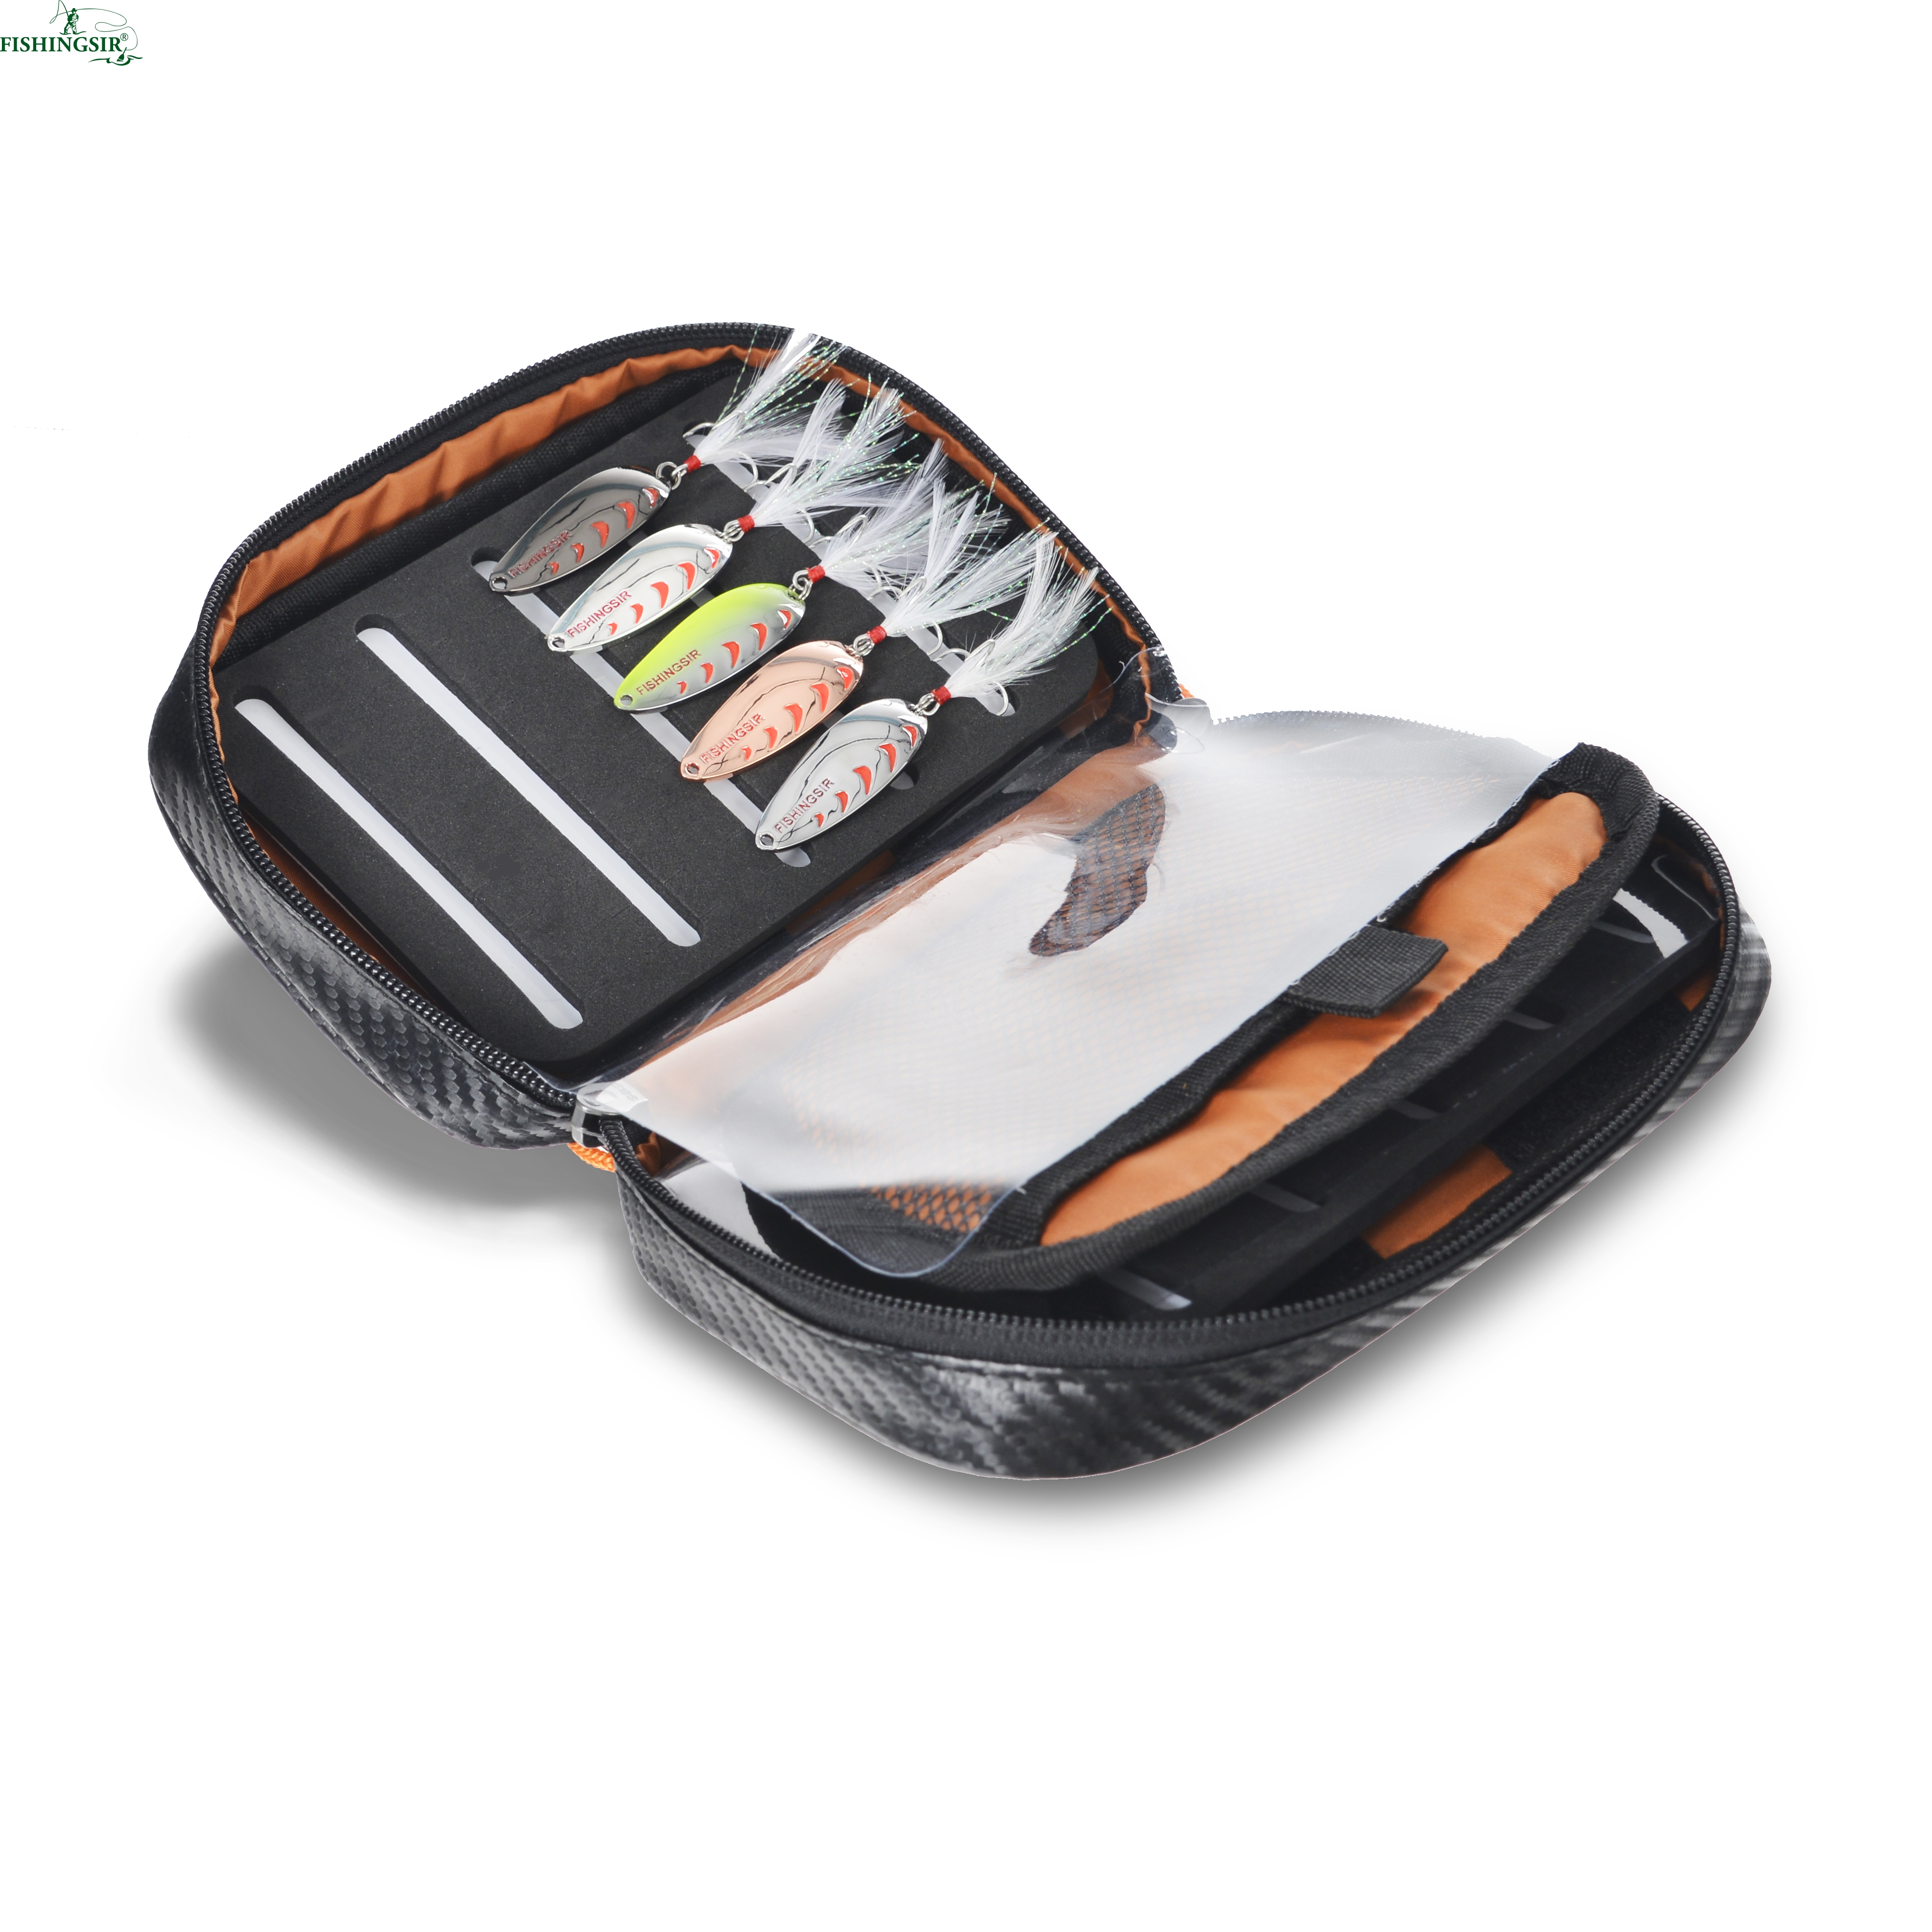 Fishing Lure Bait Storage Fishing Accessories <font><b>Box</b></font> Bag Container for Spoon lures Spinner Metal Wobblers Fishing Bait Bag Tackle